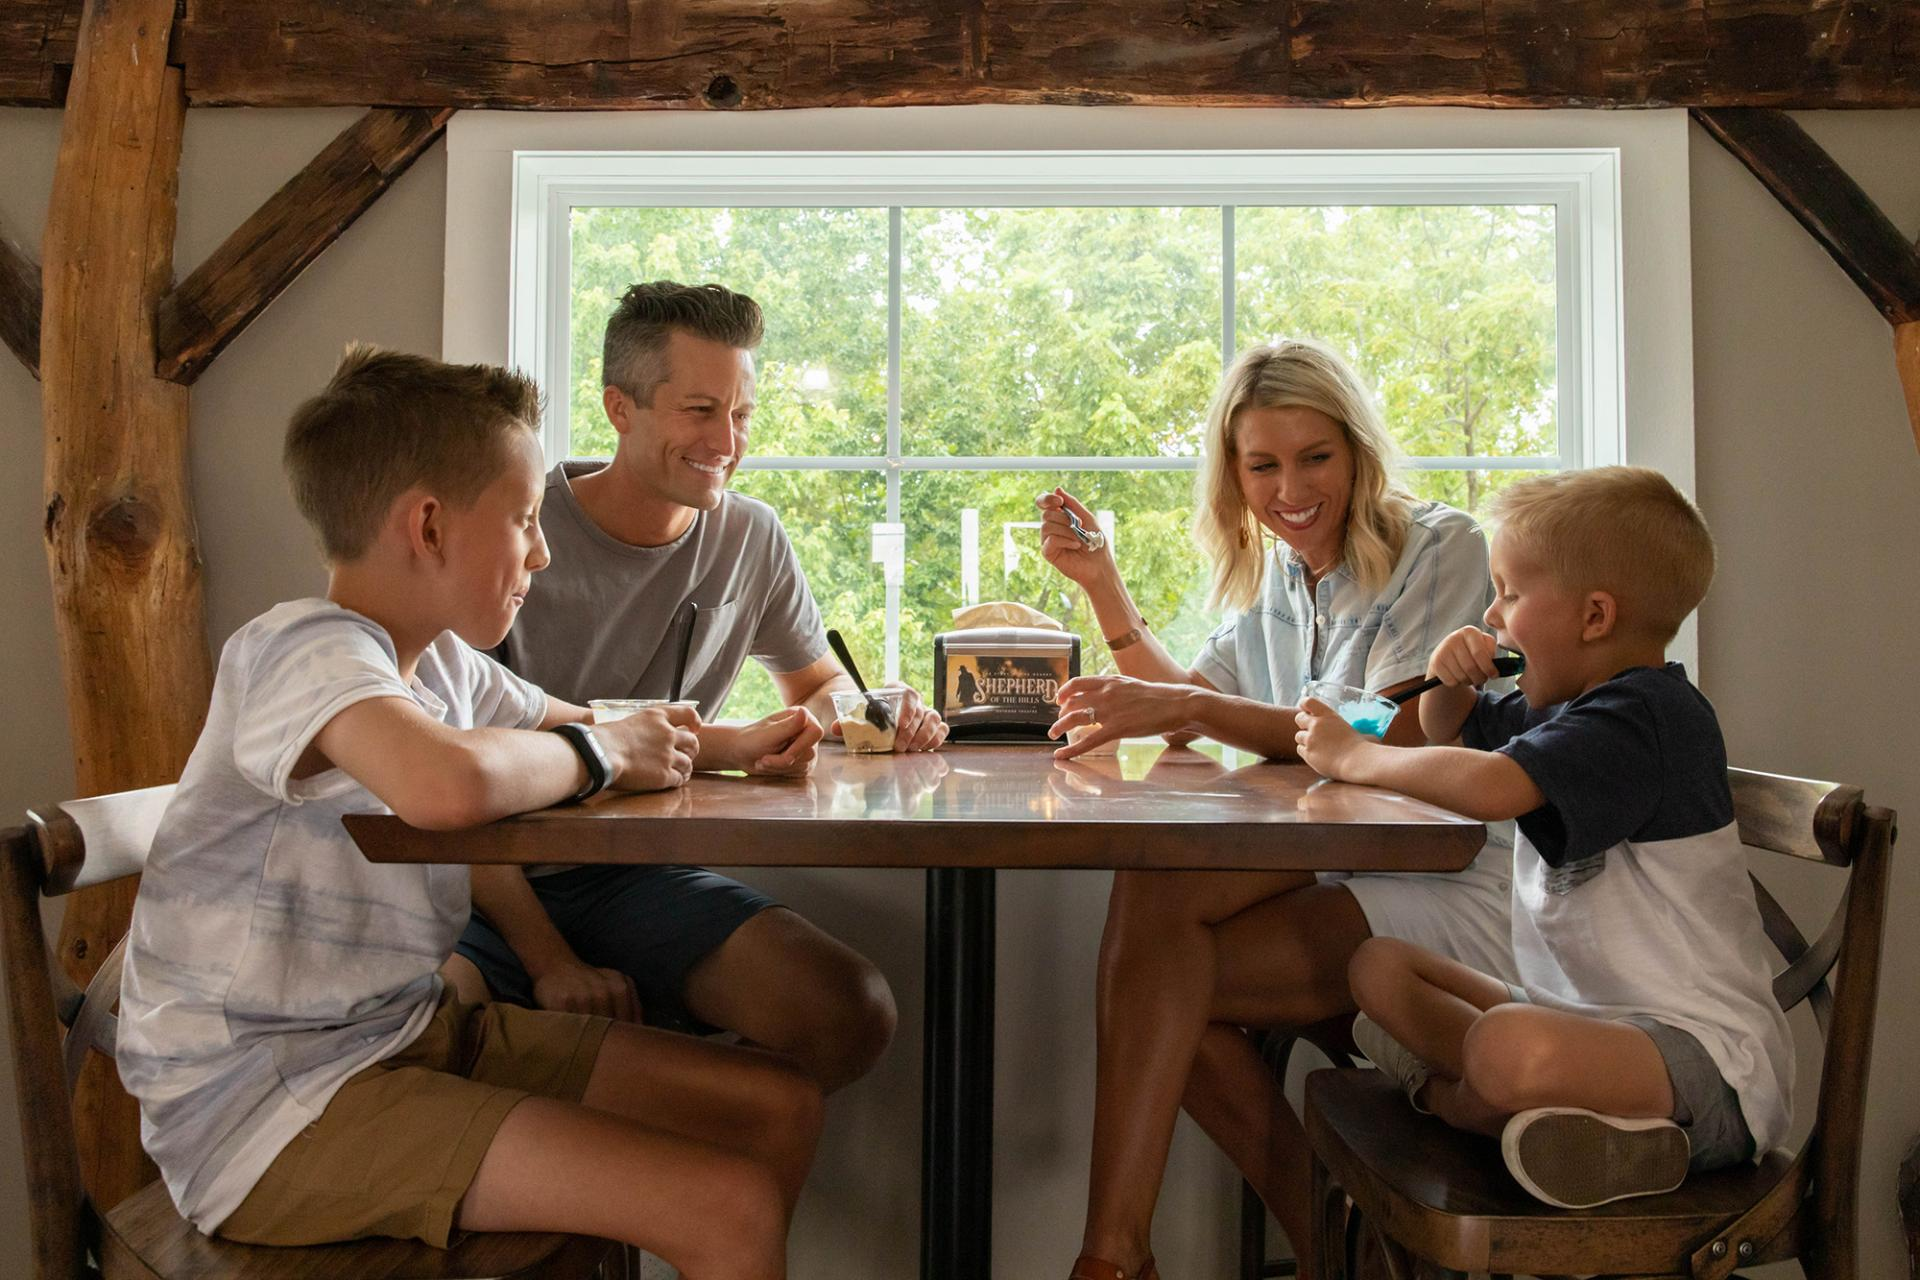 Young family of four enjoying ice cream at a table